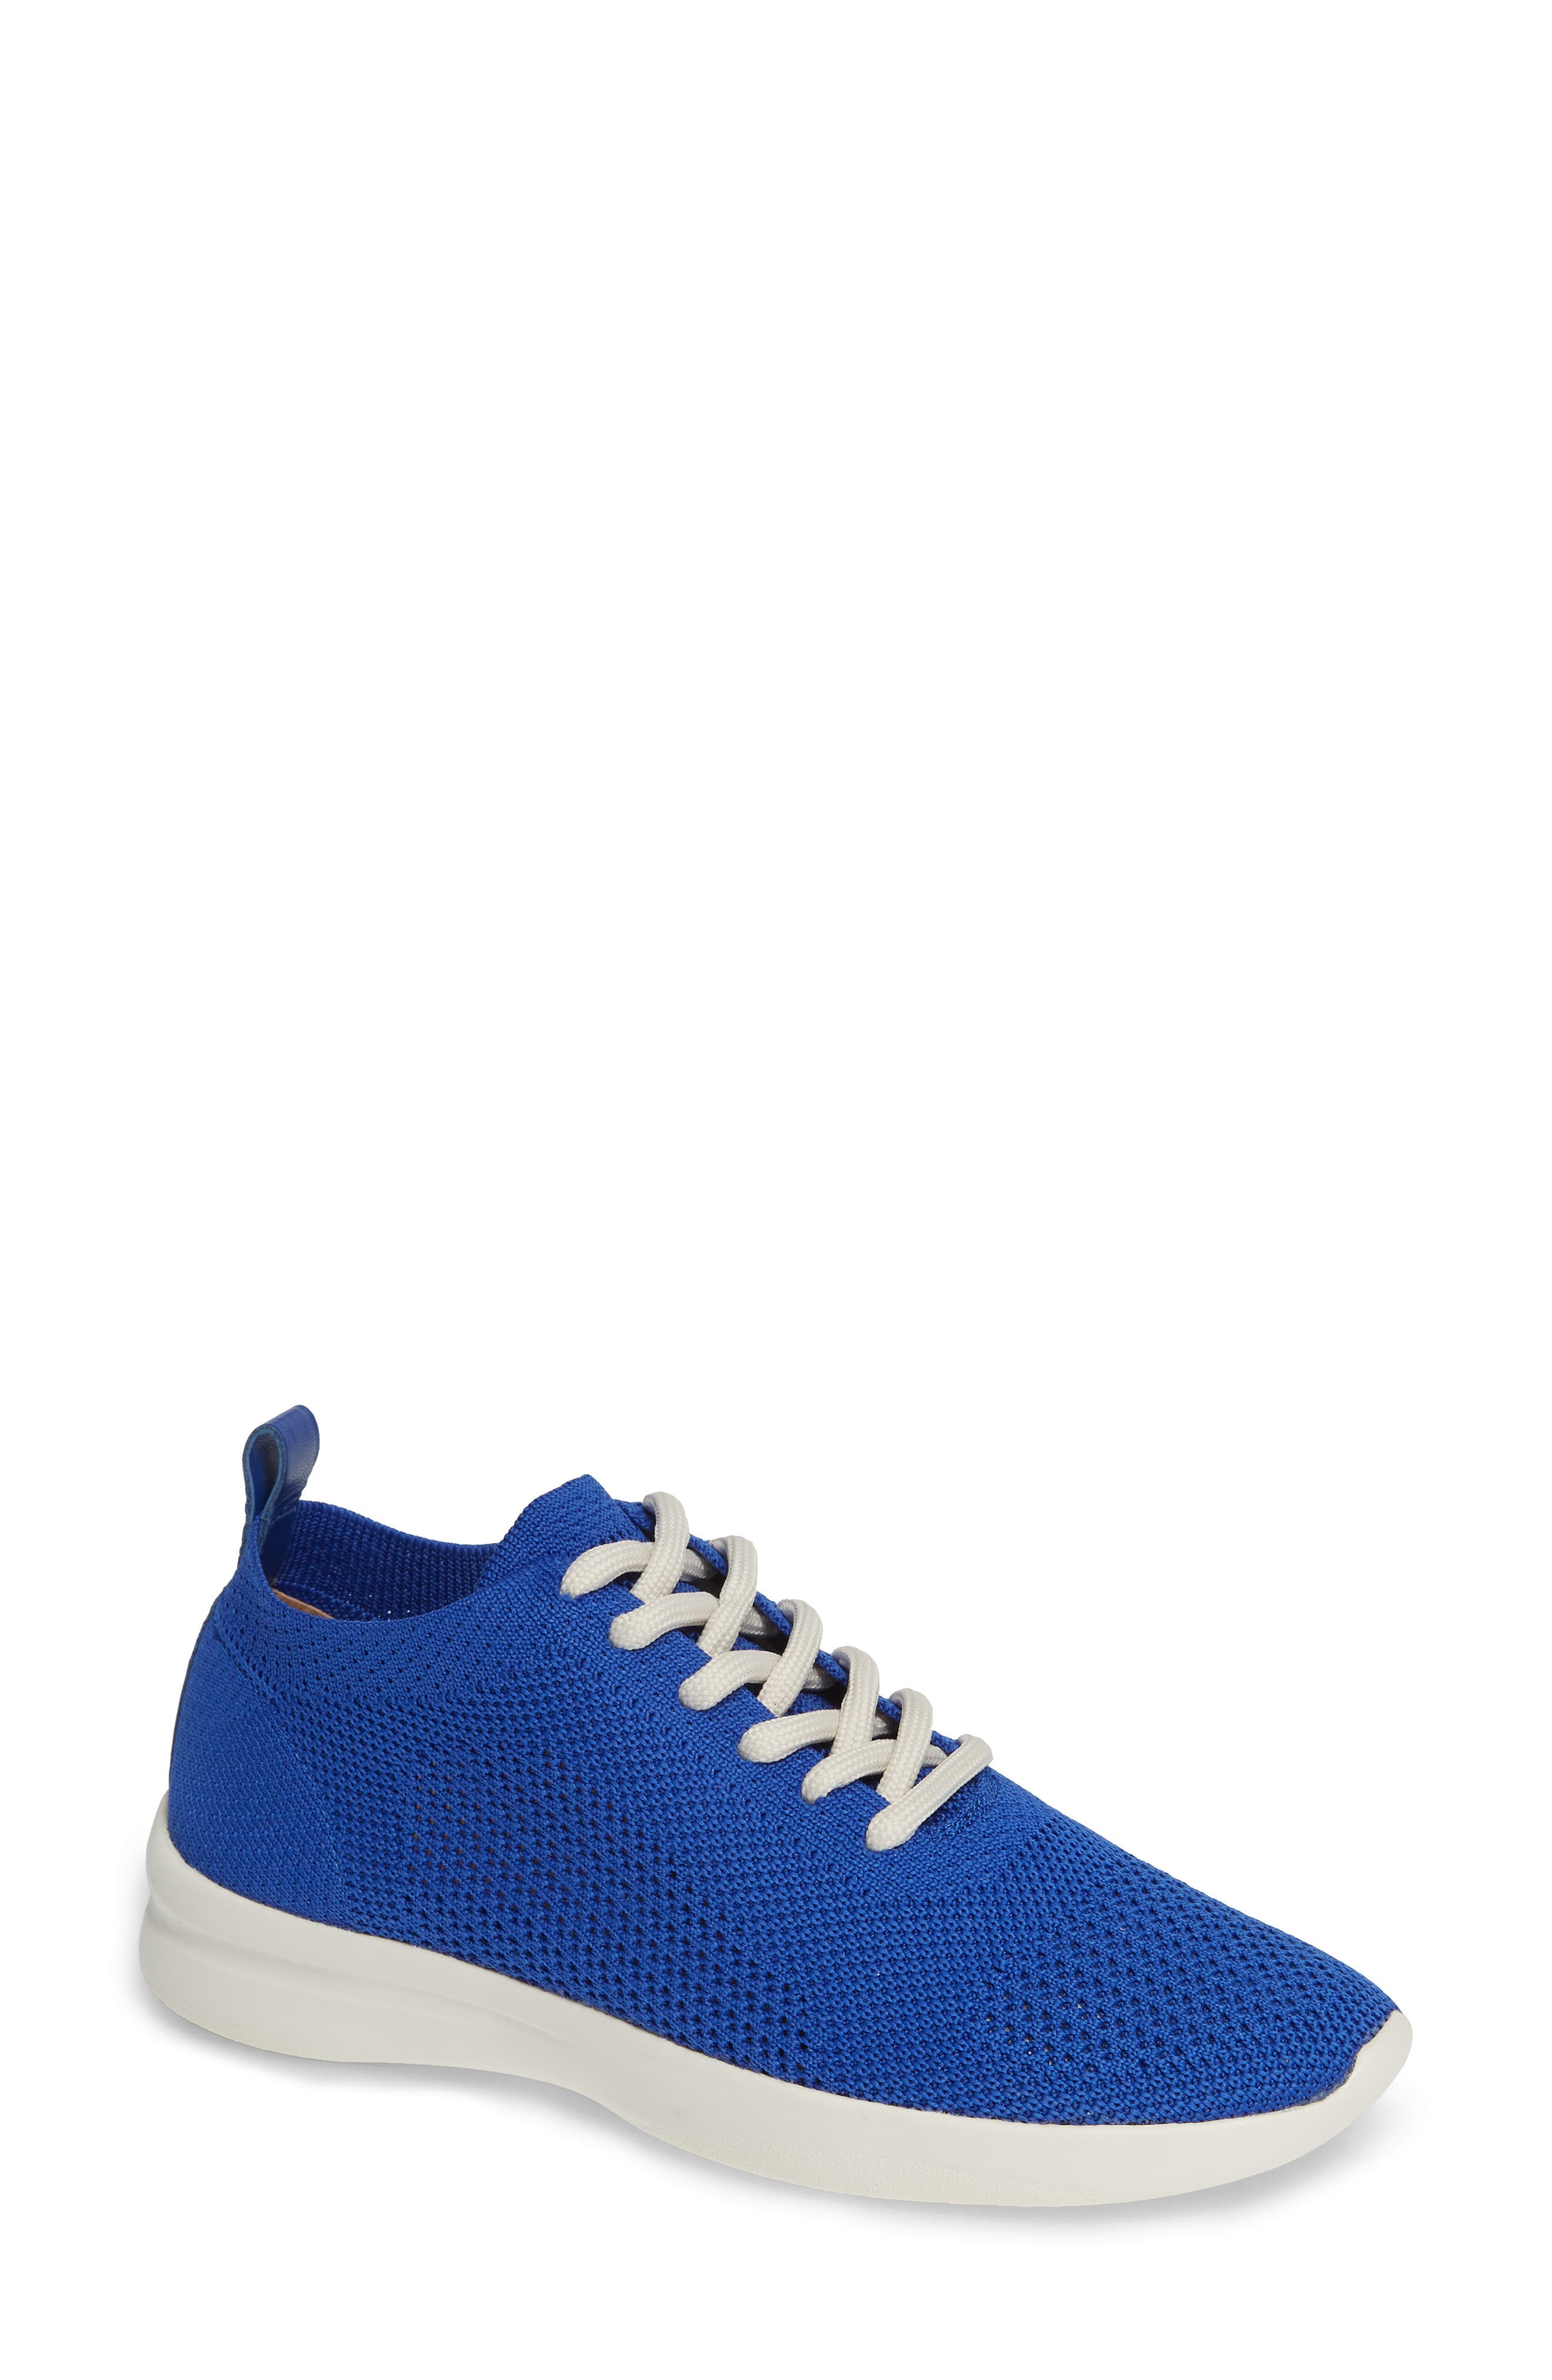 Randee Sneaker,                         Main,                         color, 461